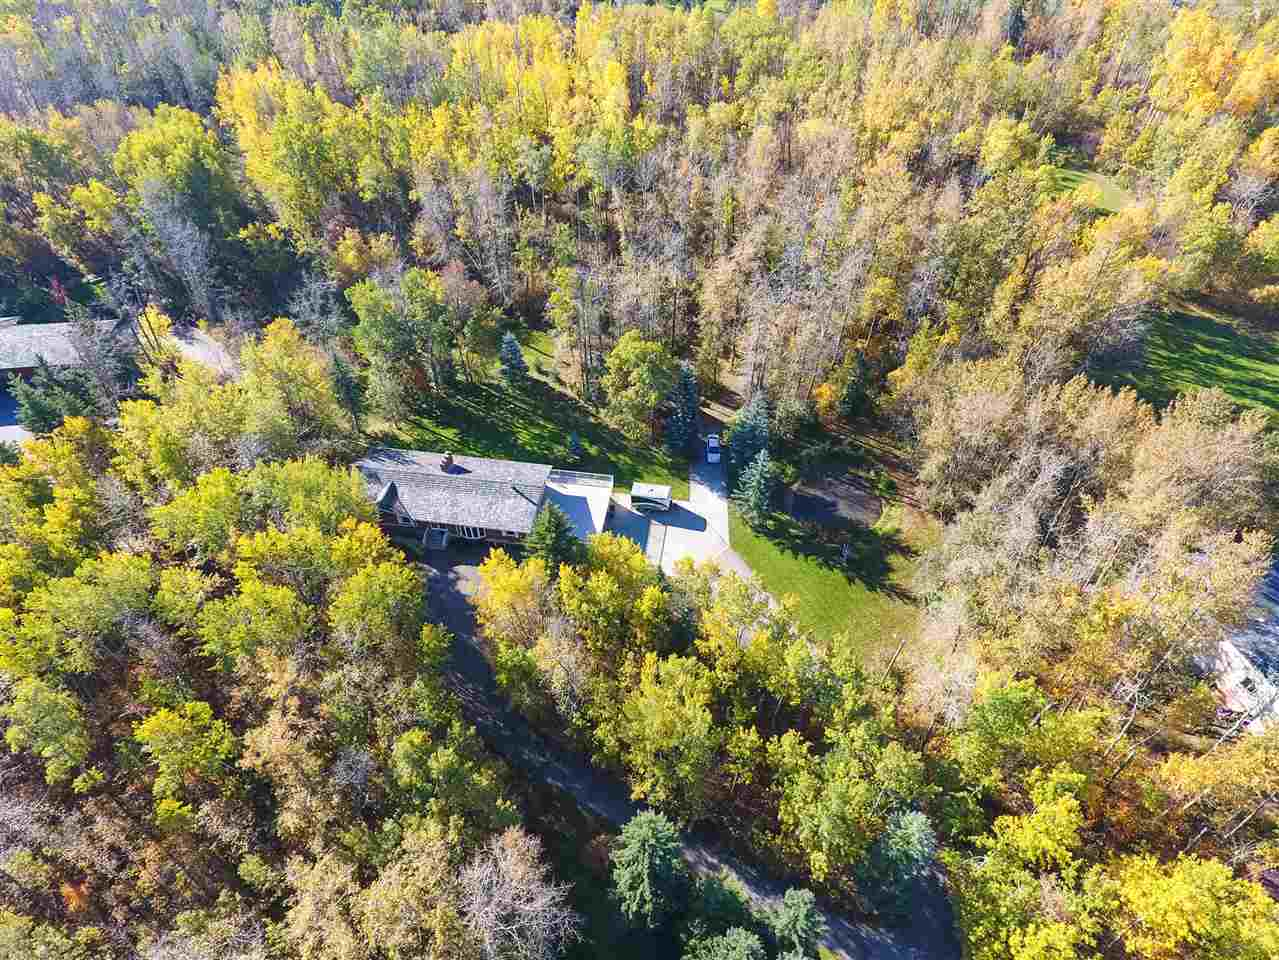 Main Photo: 146 52210 Rng Rd 232: Rural Strathcona County House for sale : MLS® # E4071294